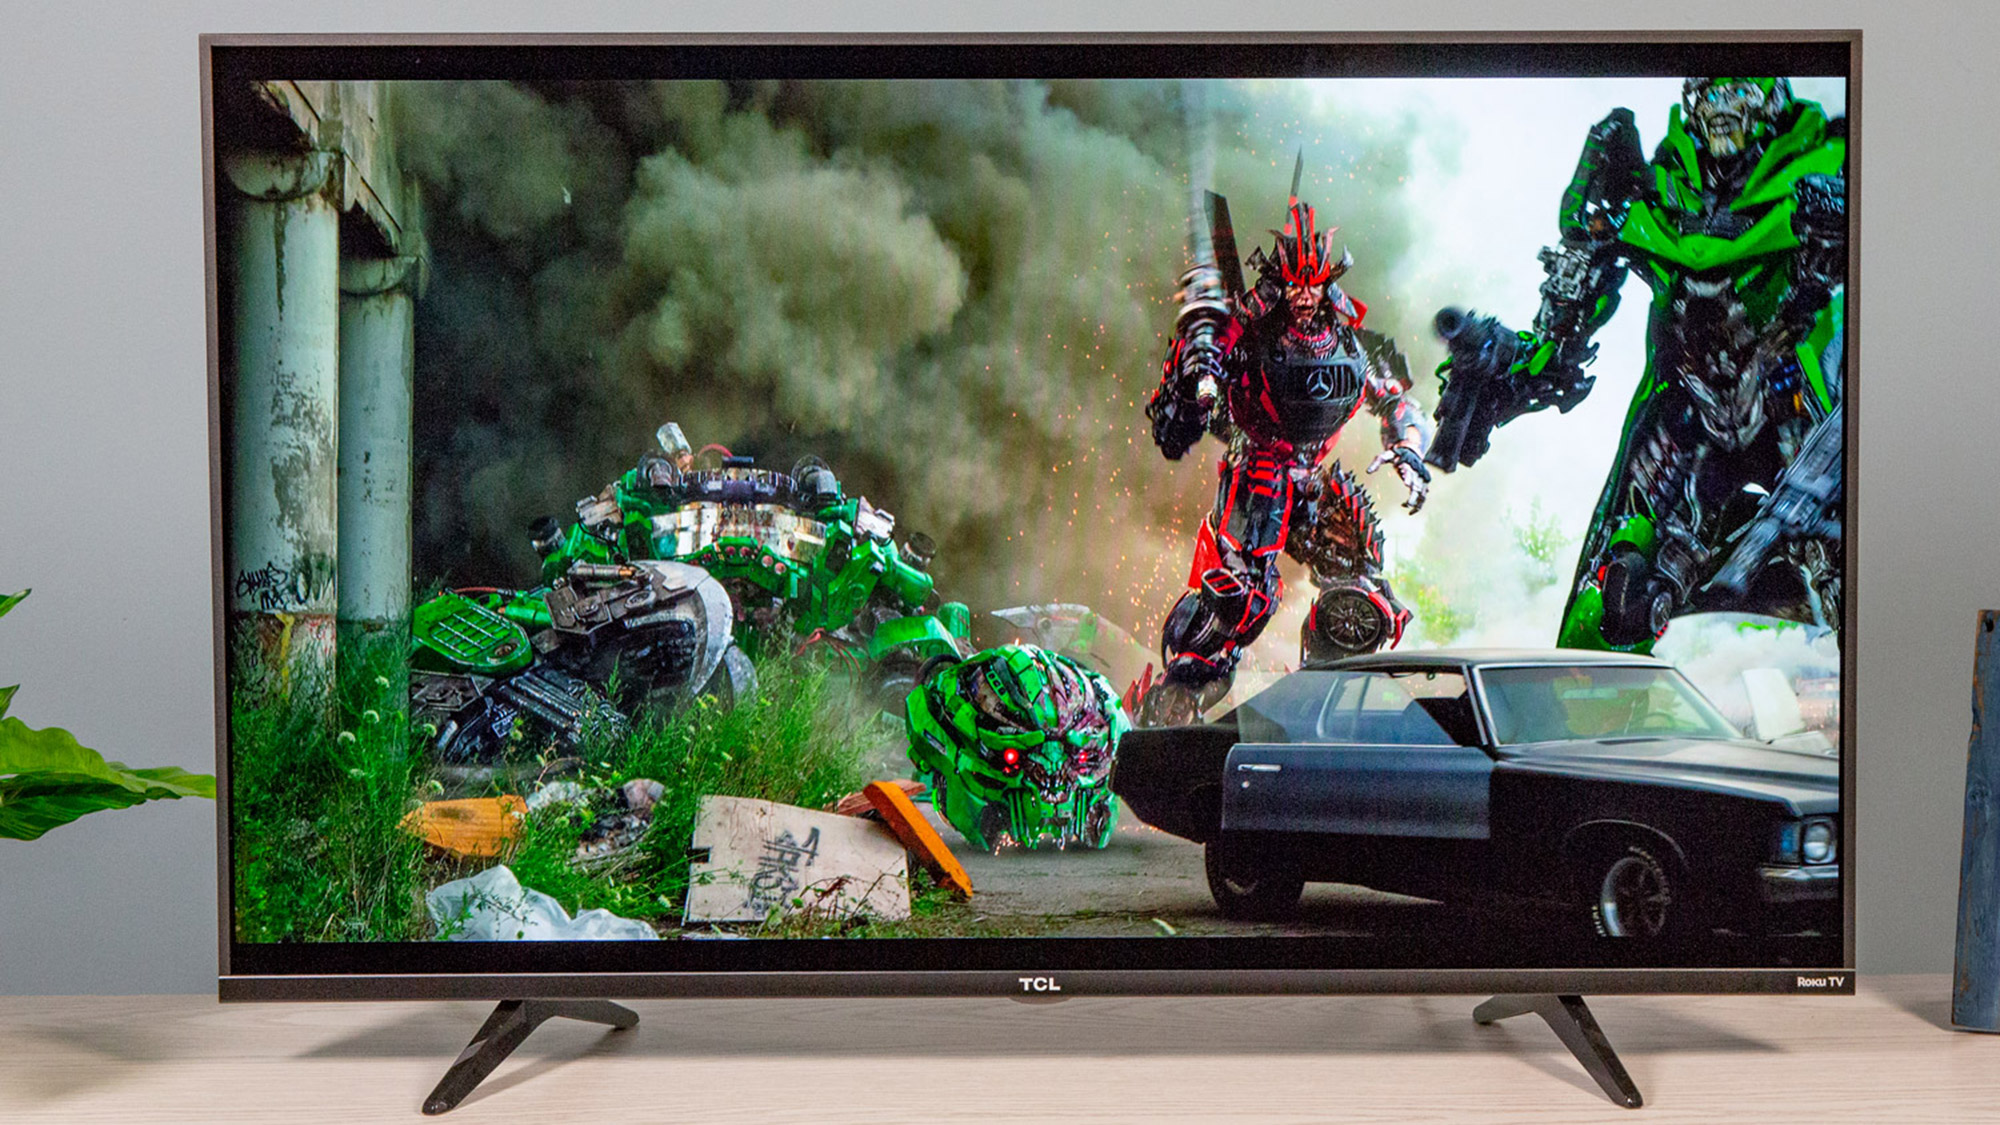 Best cheap TV deals in August 2020 | Tom's Guide